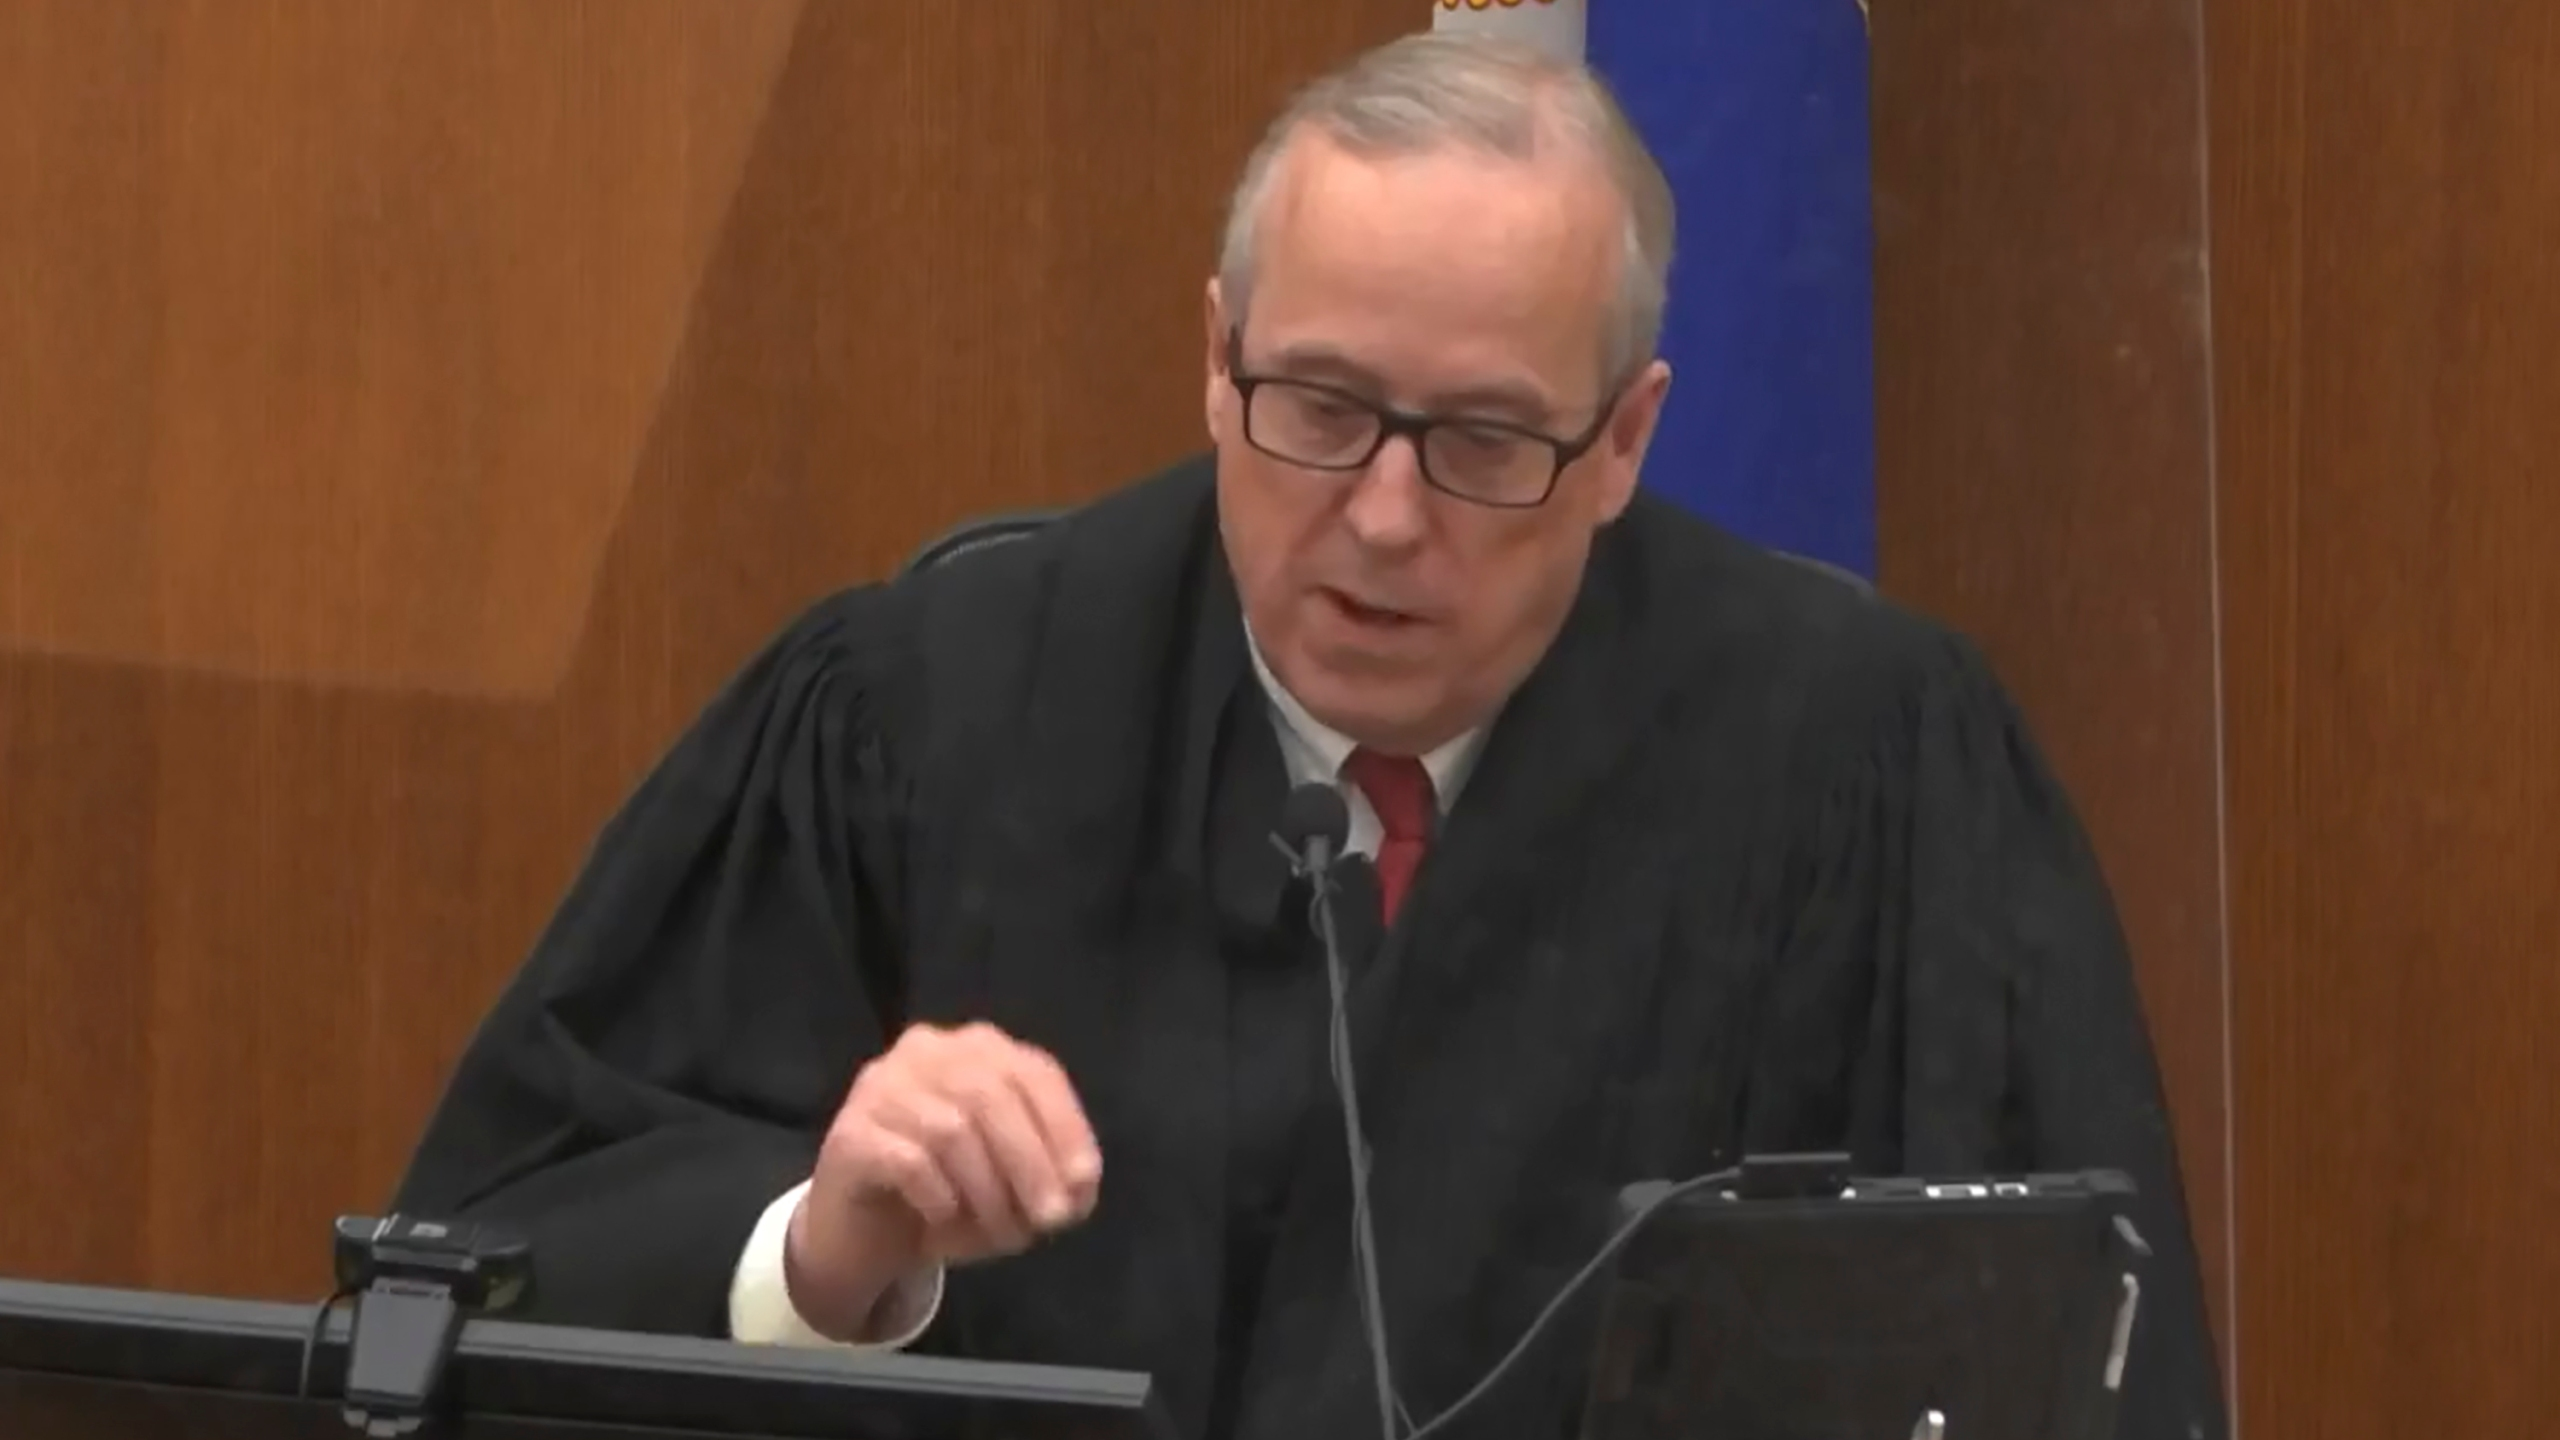 In this screen grab from video, Hennepin County Judge Peter Cahill presides over jury selection, Wednesday, March 17, 2021, in the trial of former Minneapolis police officer Derek Chauvin, in the May 25, 2020, death of George Floyd at the Hennepin County Courthouse in Minneapolis, Minn. The Judge dismissed a juror seated for ex-officer's trial who said $27M settlement to Floyd family would skew judgment. (Court TV, via AP, Pool)